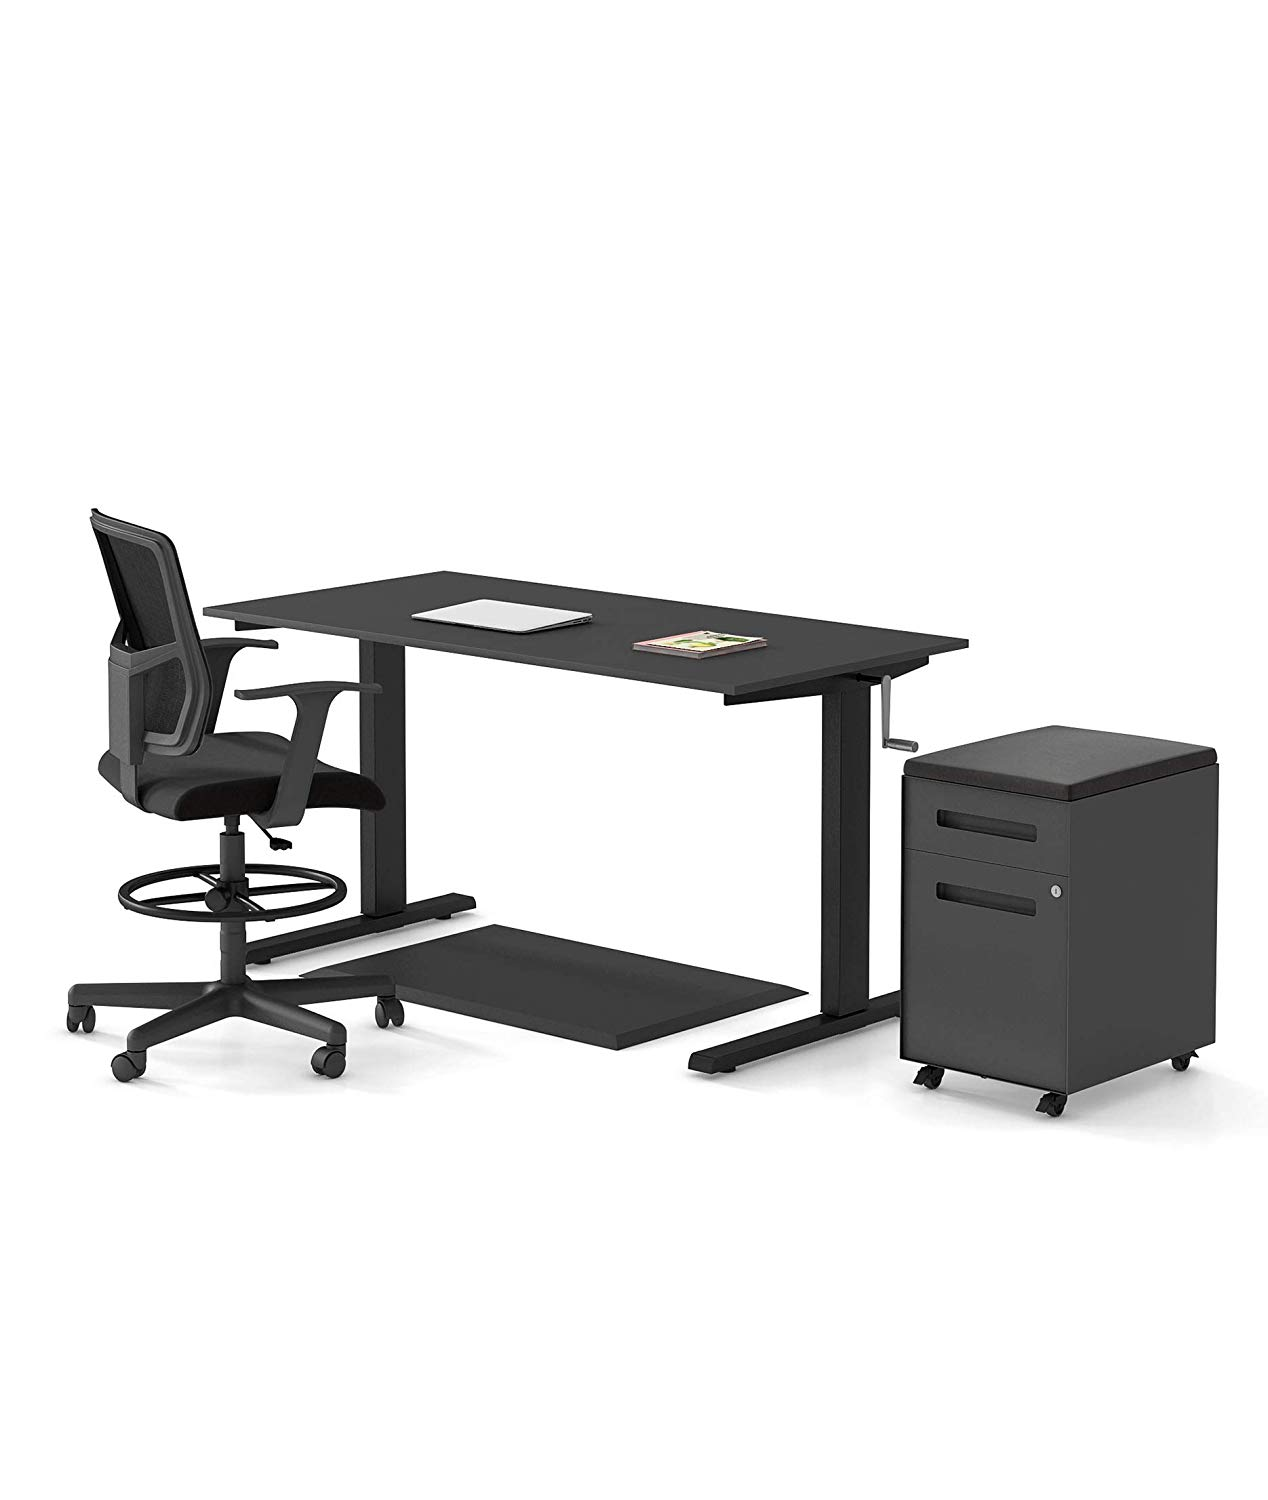 "Crank Stand up Desk Standard Bundle – Includes a Standing Desk/Height Adjustable Desk, 2 Drawer File Cabinet/Rolling File Cabinet, Anti Fatigue Mat, and Drafting Chair (60"") (Black)"